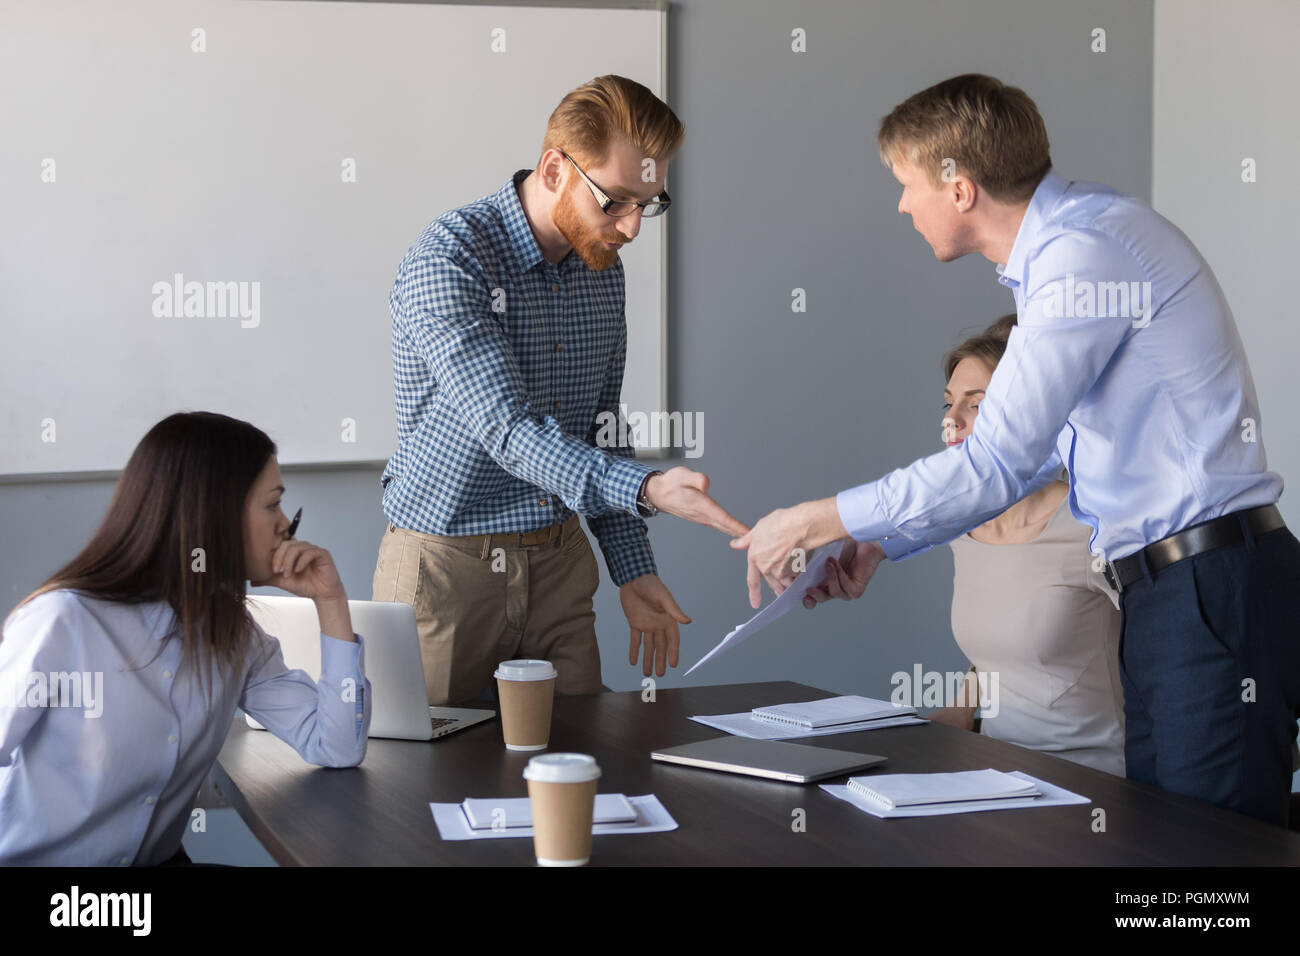 Angry coworkers disagree about contract terms and conditions - Stock Image